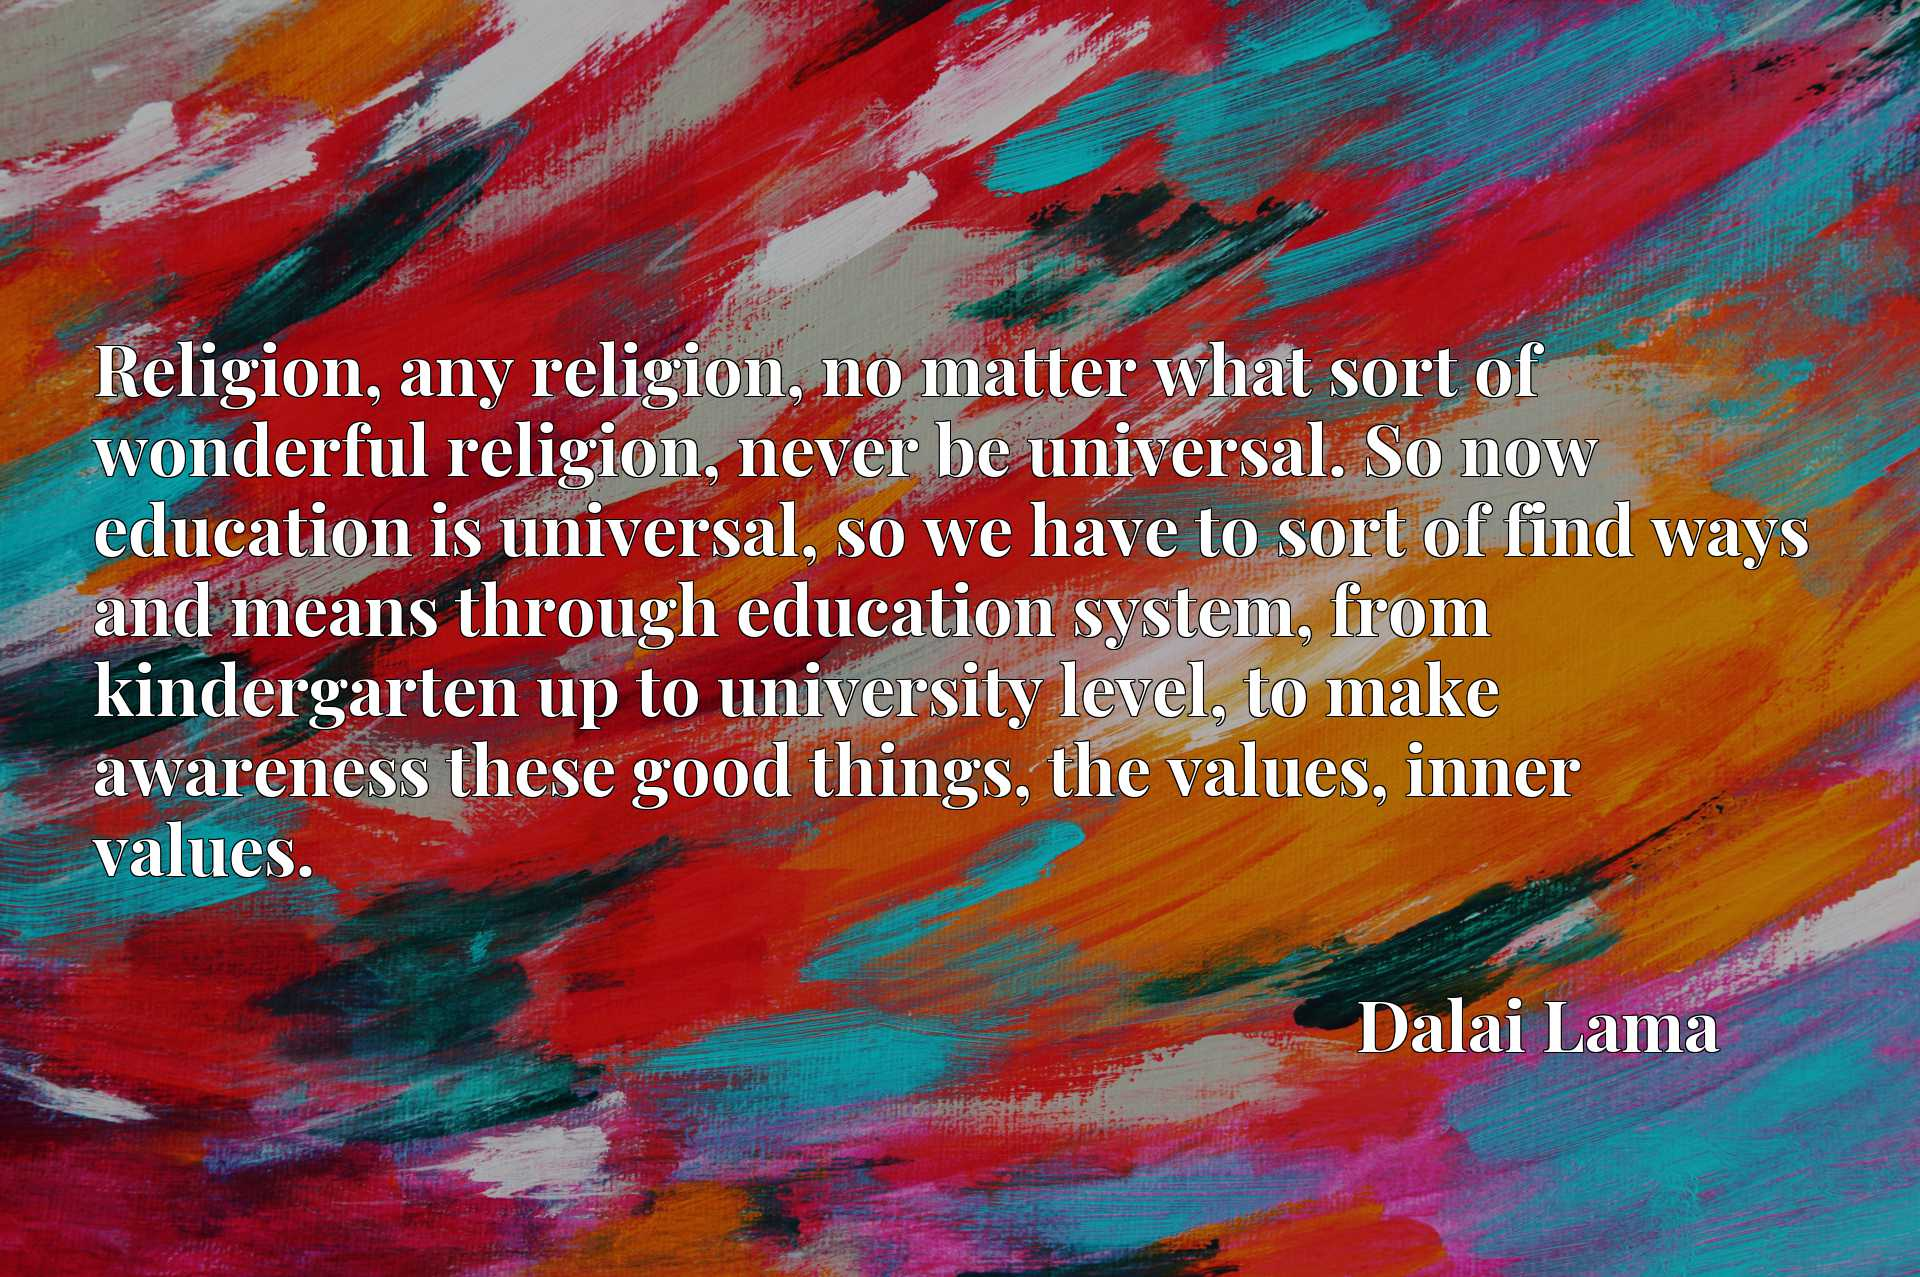 Religion, any religion, no matter what sort of wonderful religion, never be universal. So now education is universal, so we have to sort of find ways and means through education system, from kindergarten up to university level, to make awareness these good things, the values, inner values.